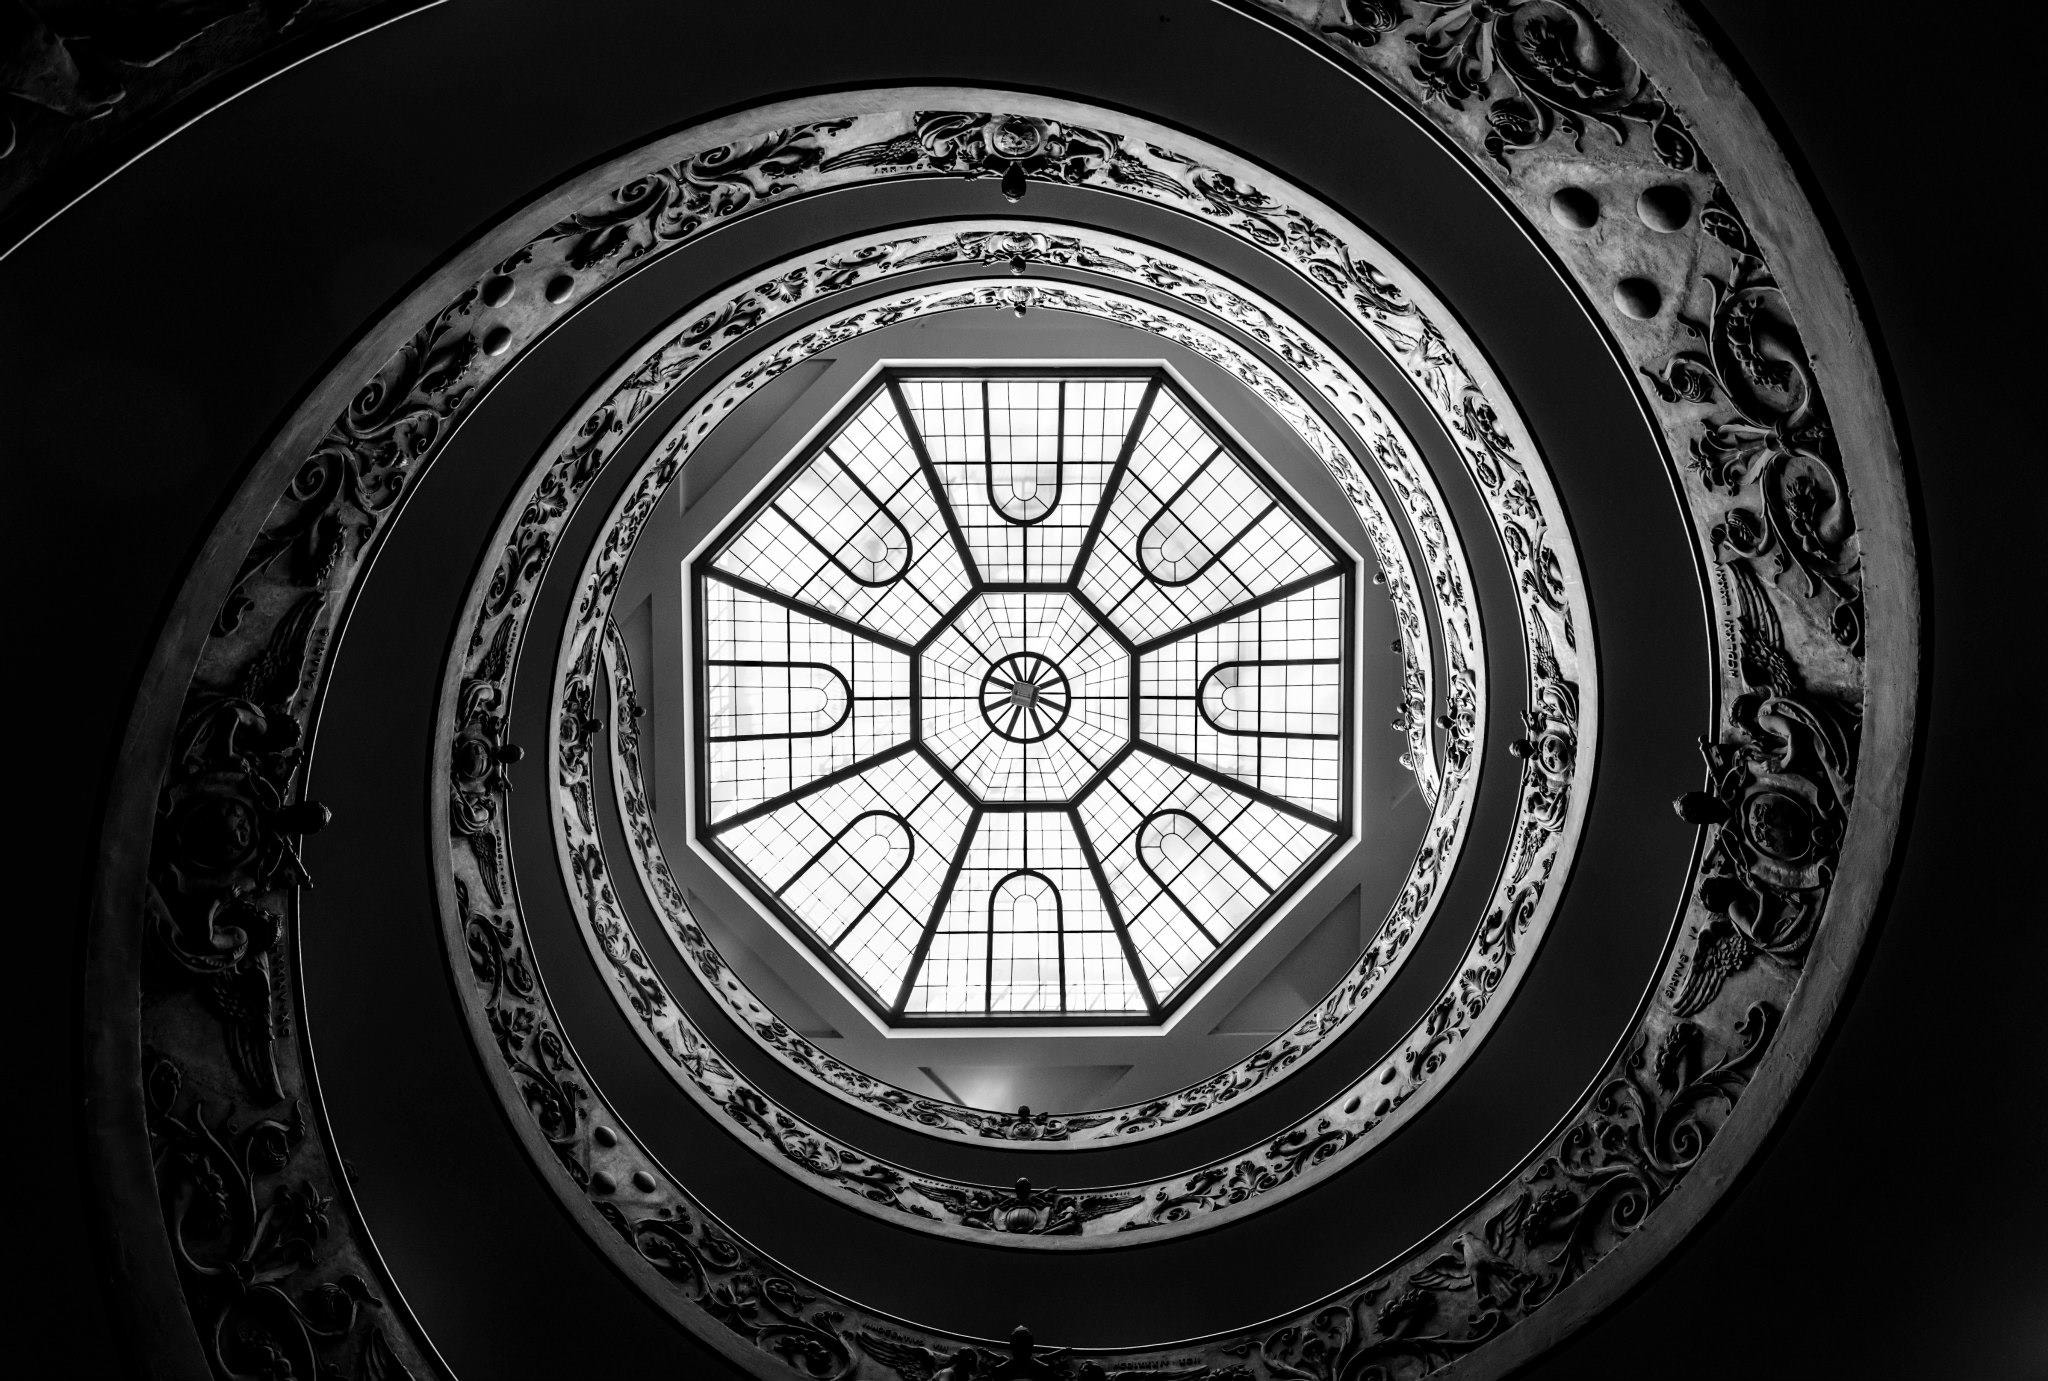 Photograph the Vatican Staircase by Austin Rhee on 500px